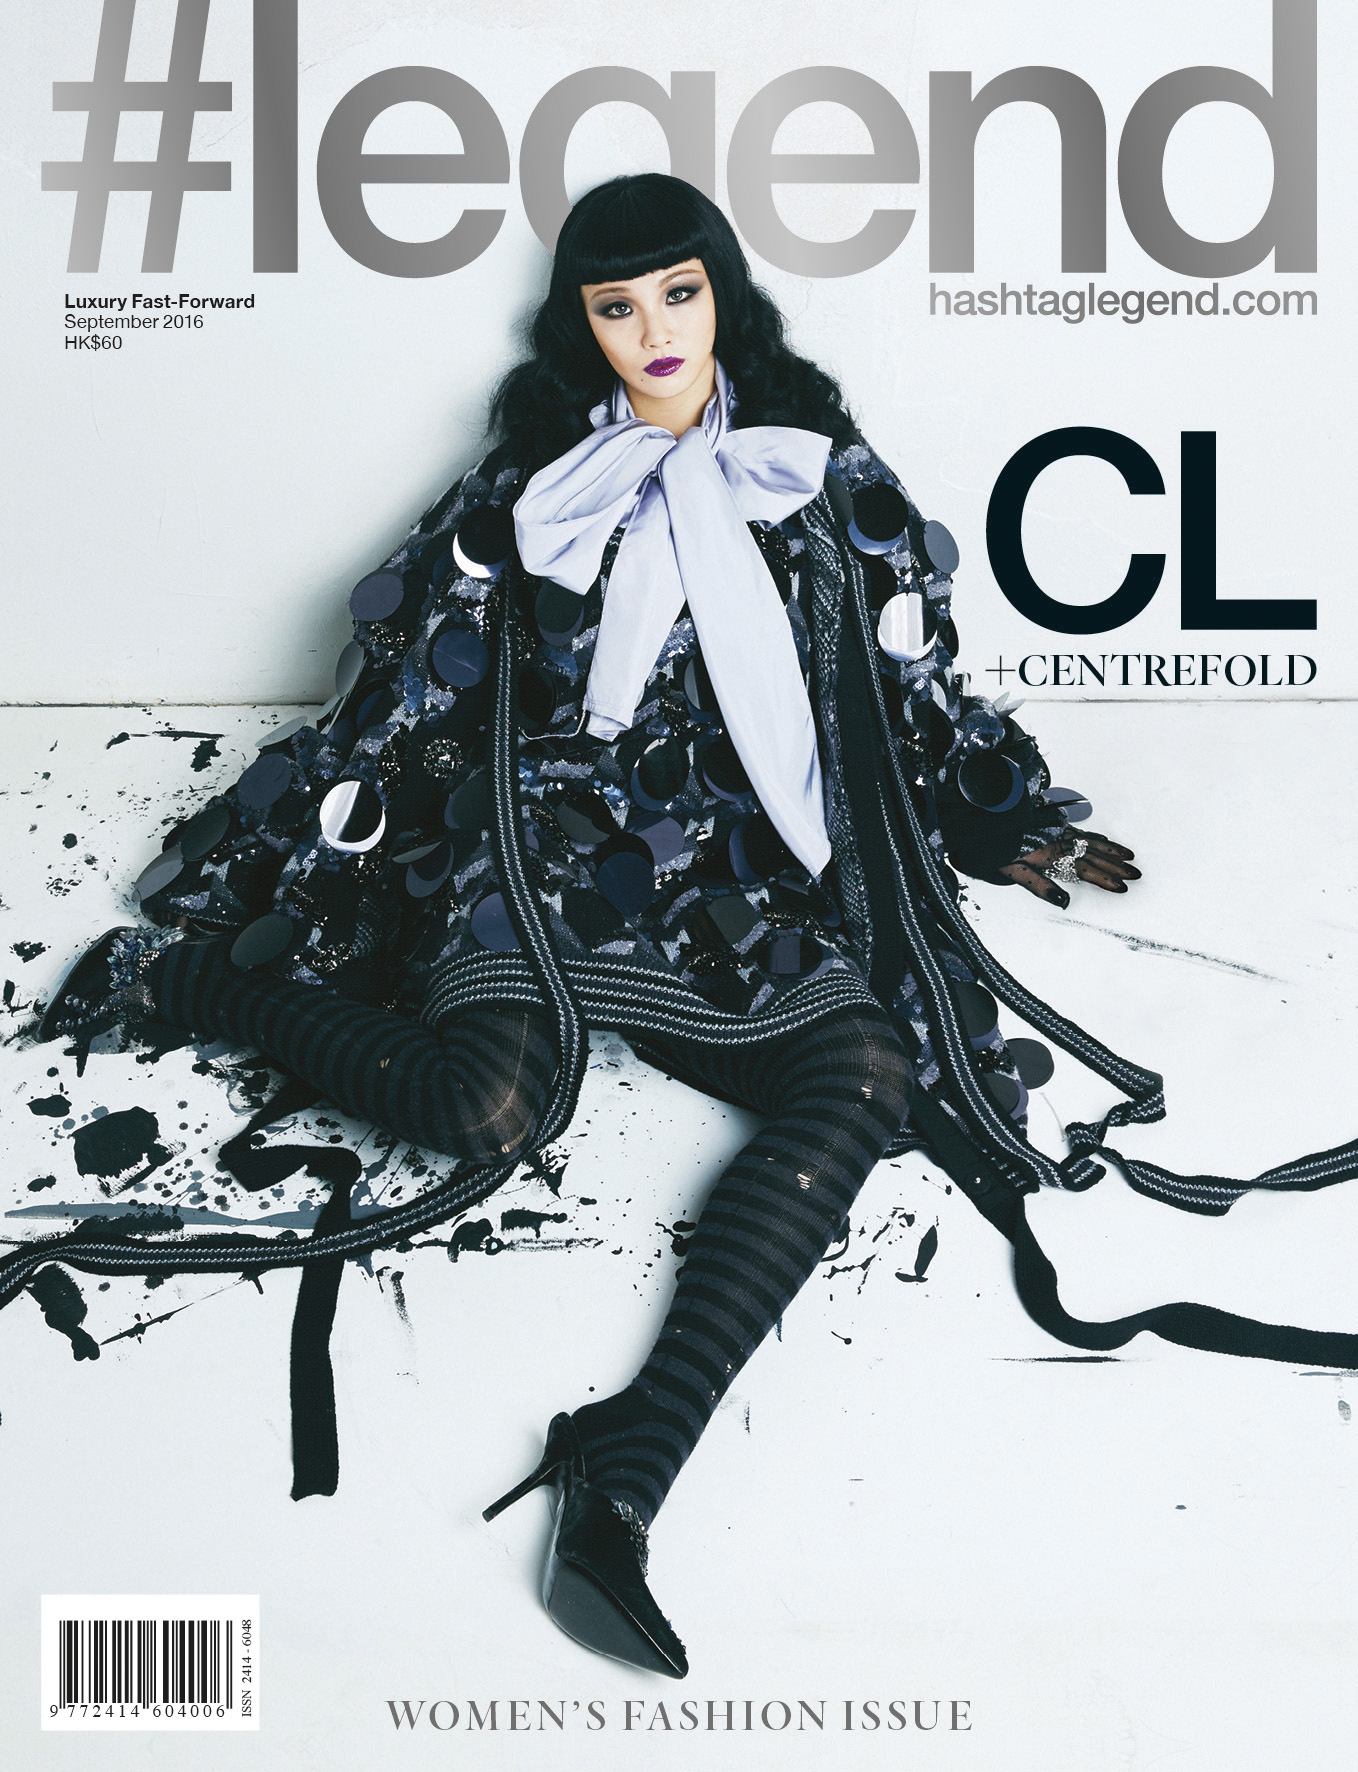 CL hashtag legend magazine 4